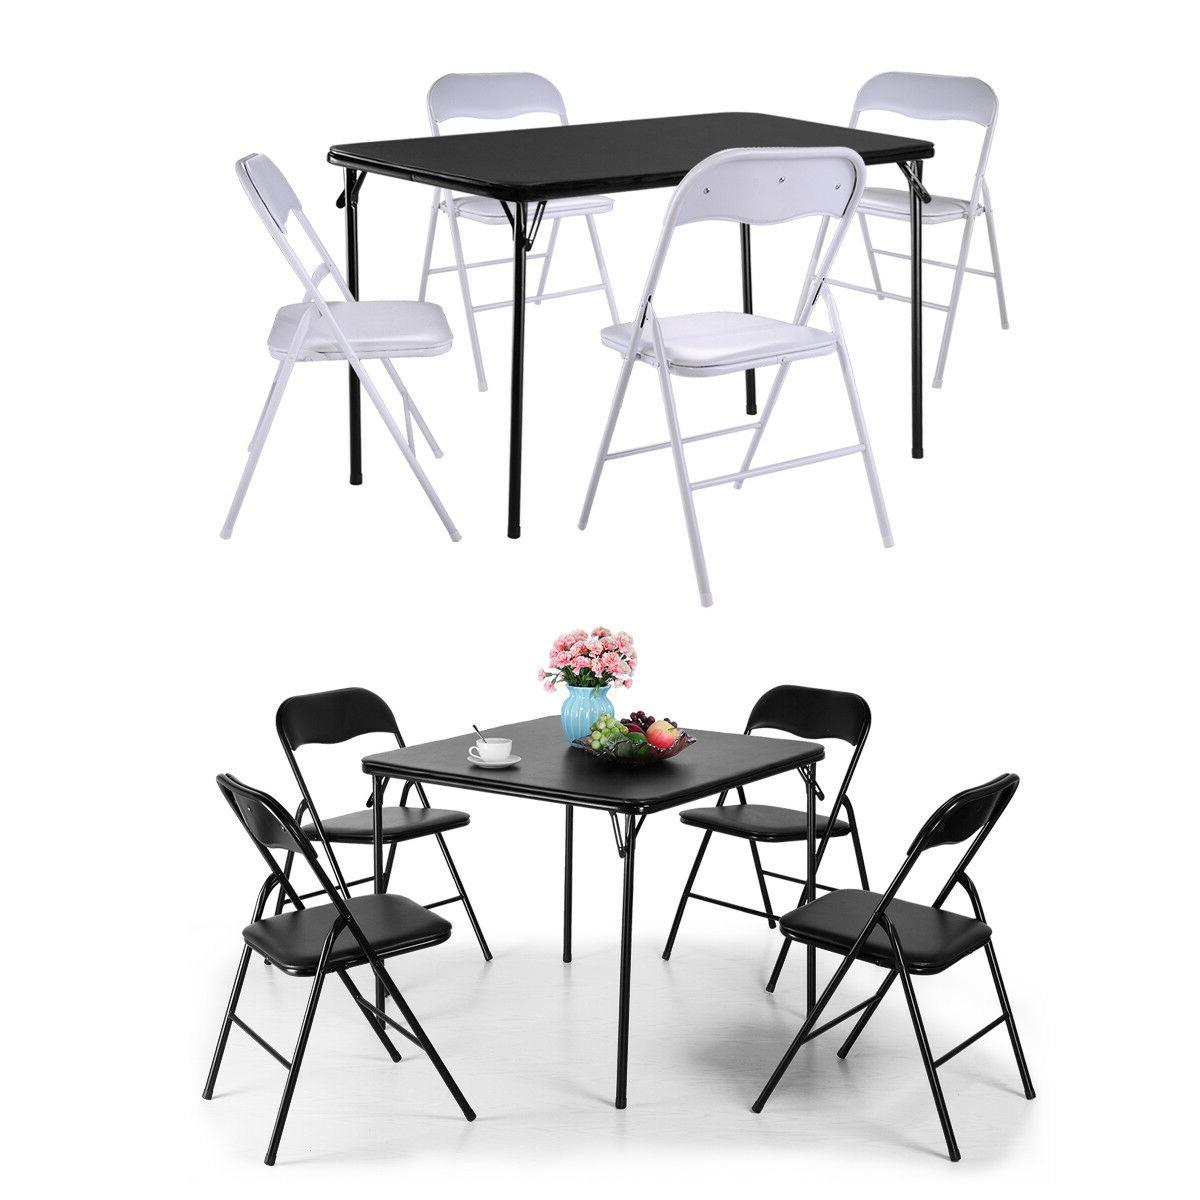 folding portable table and chairs set outdoor